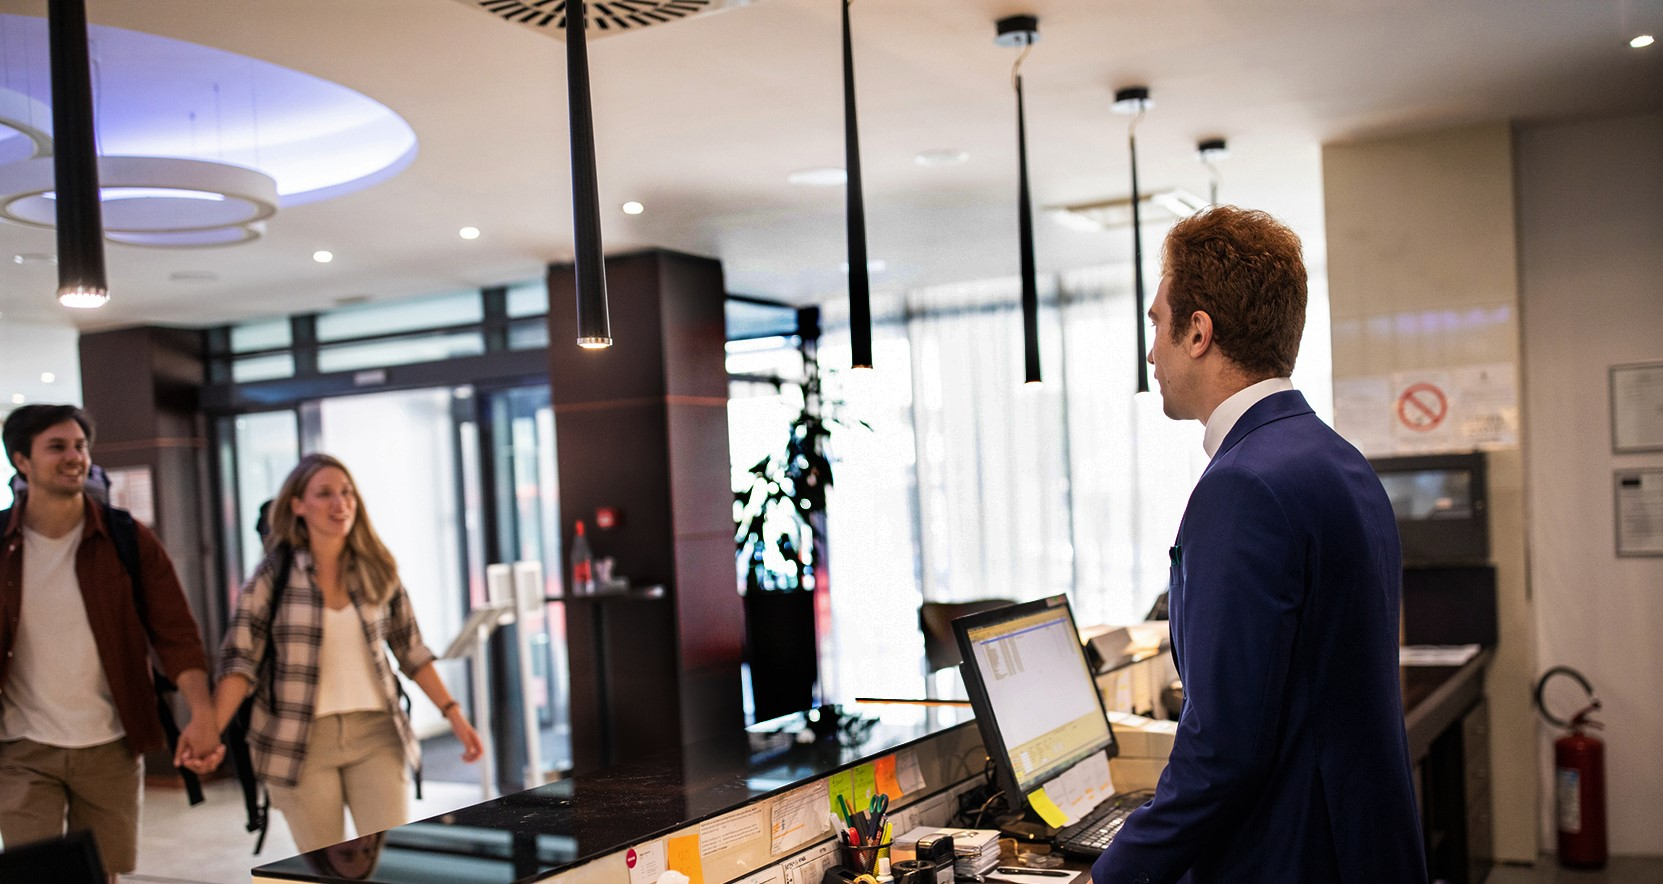 Happy young male and female couple being greeted by receptionist, as they walk to the front desk of a luxury hotel to check-in.